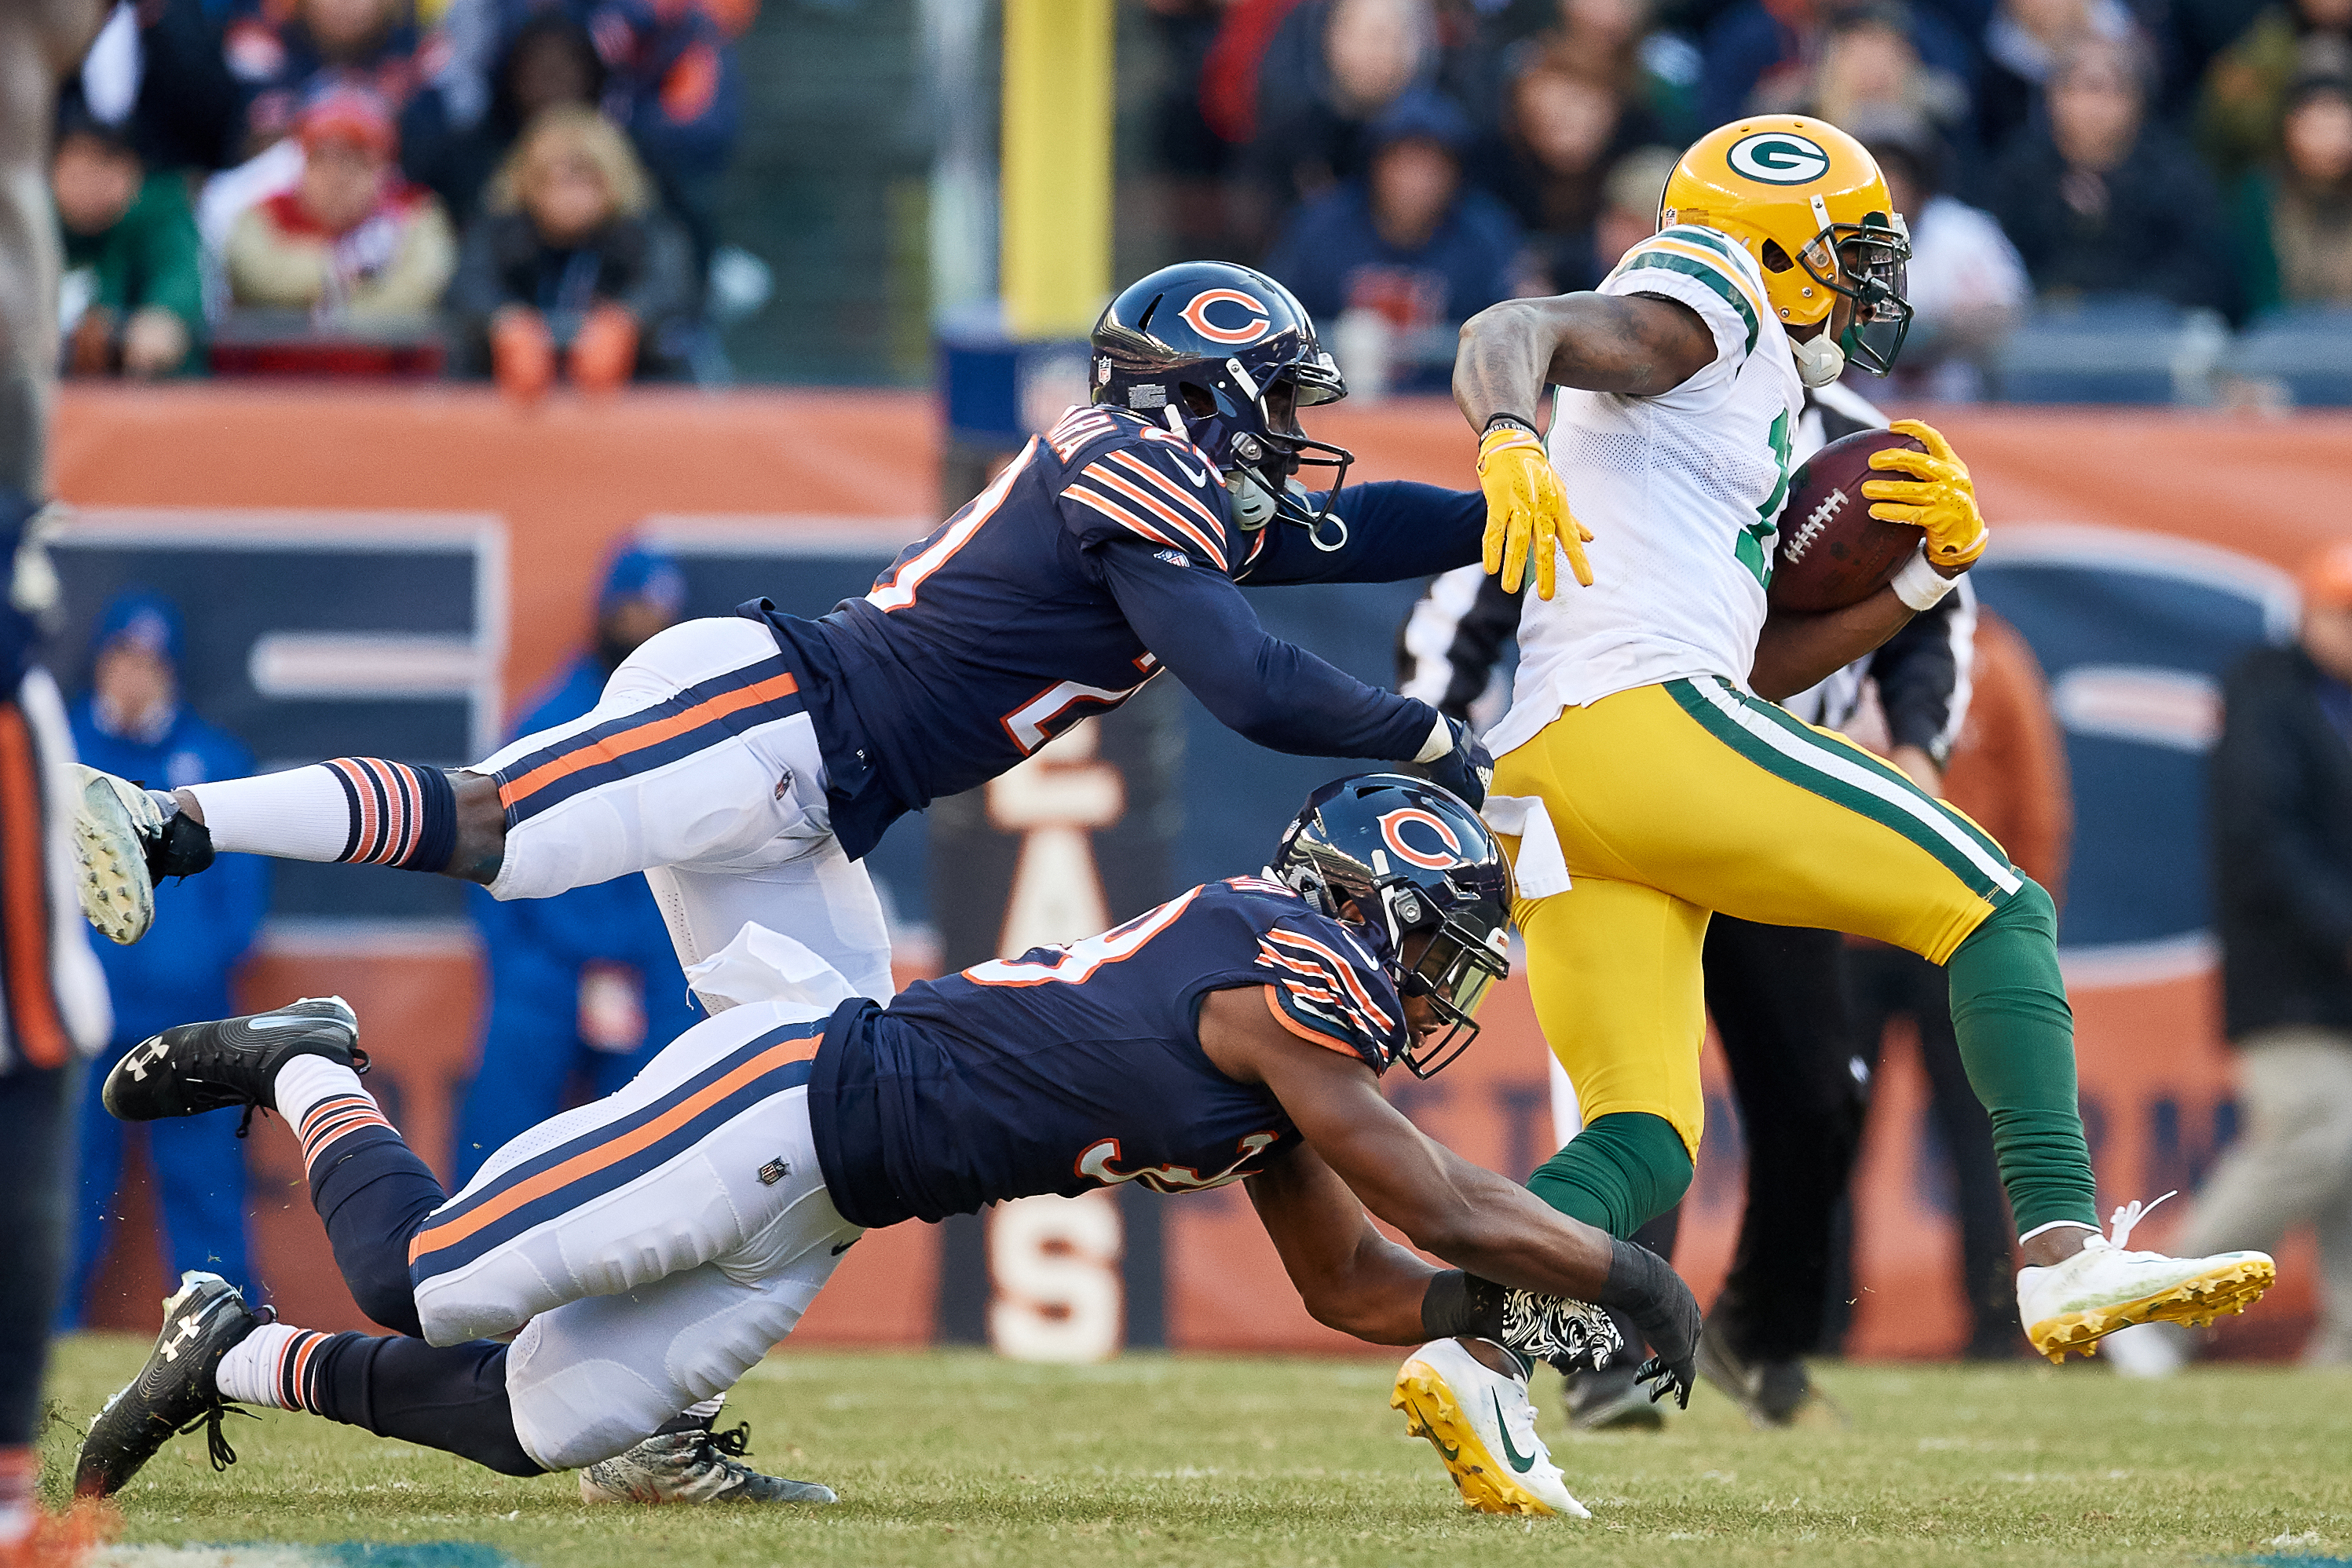 NFL: DEC 16 Packers at Bears